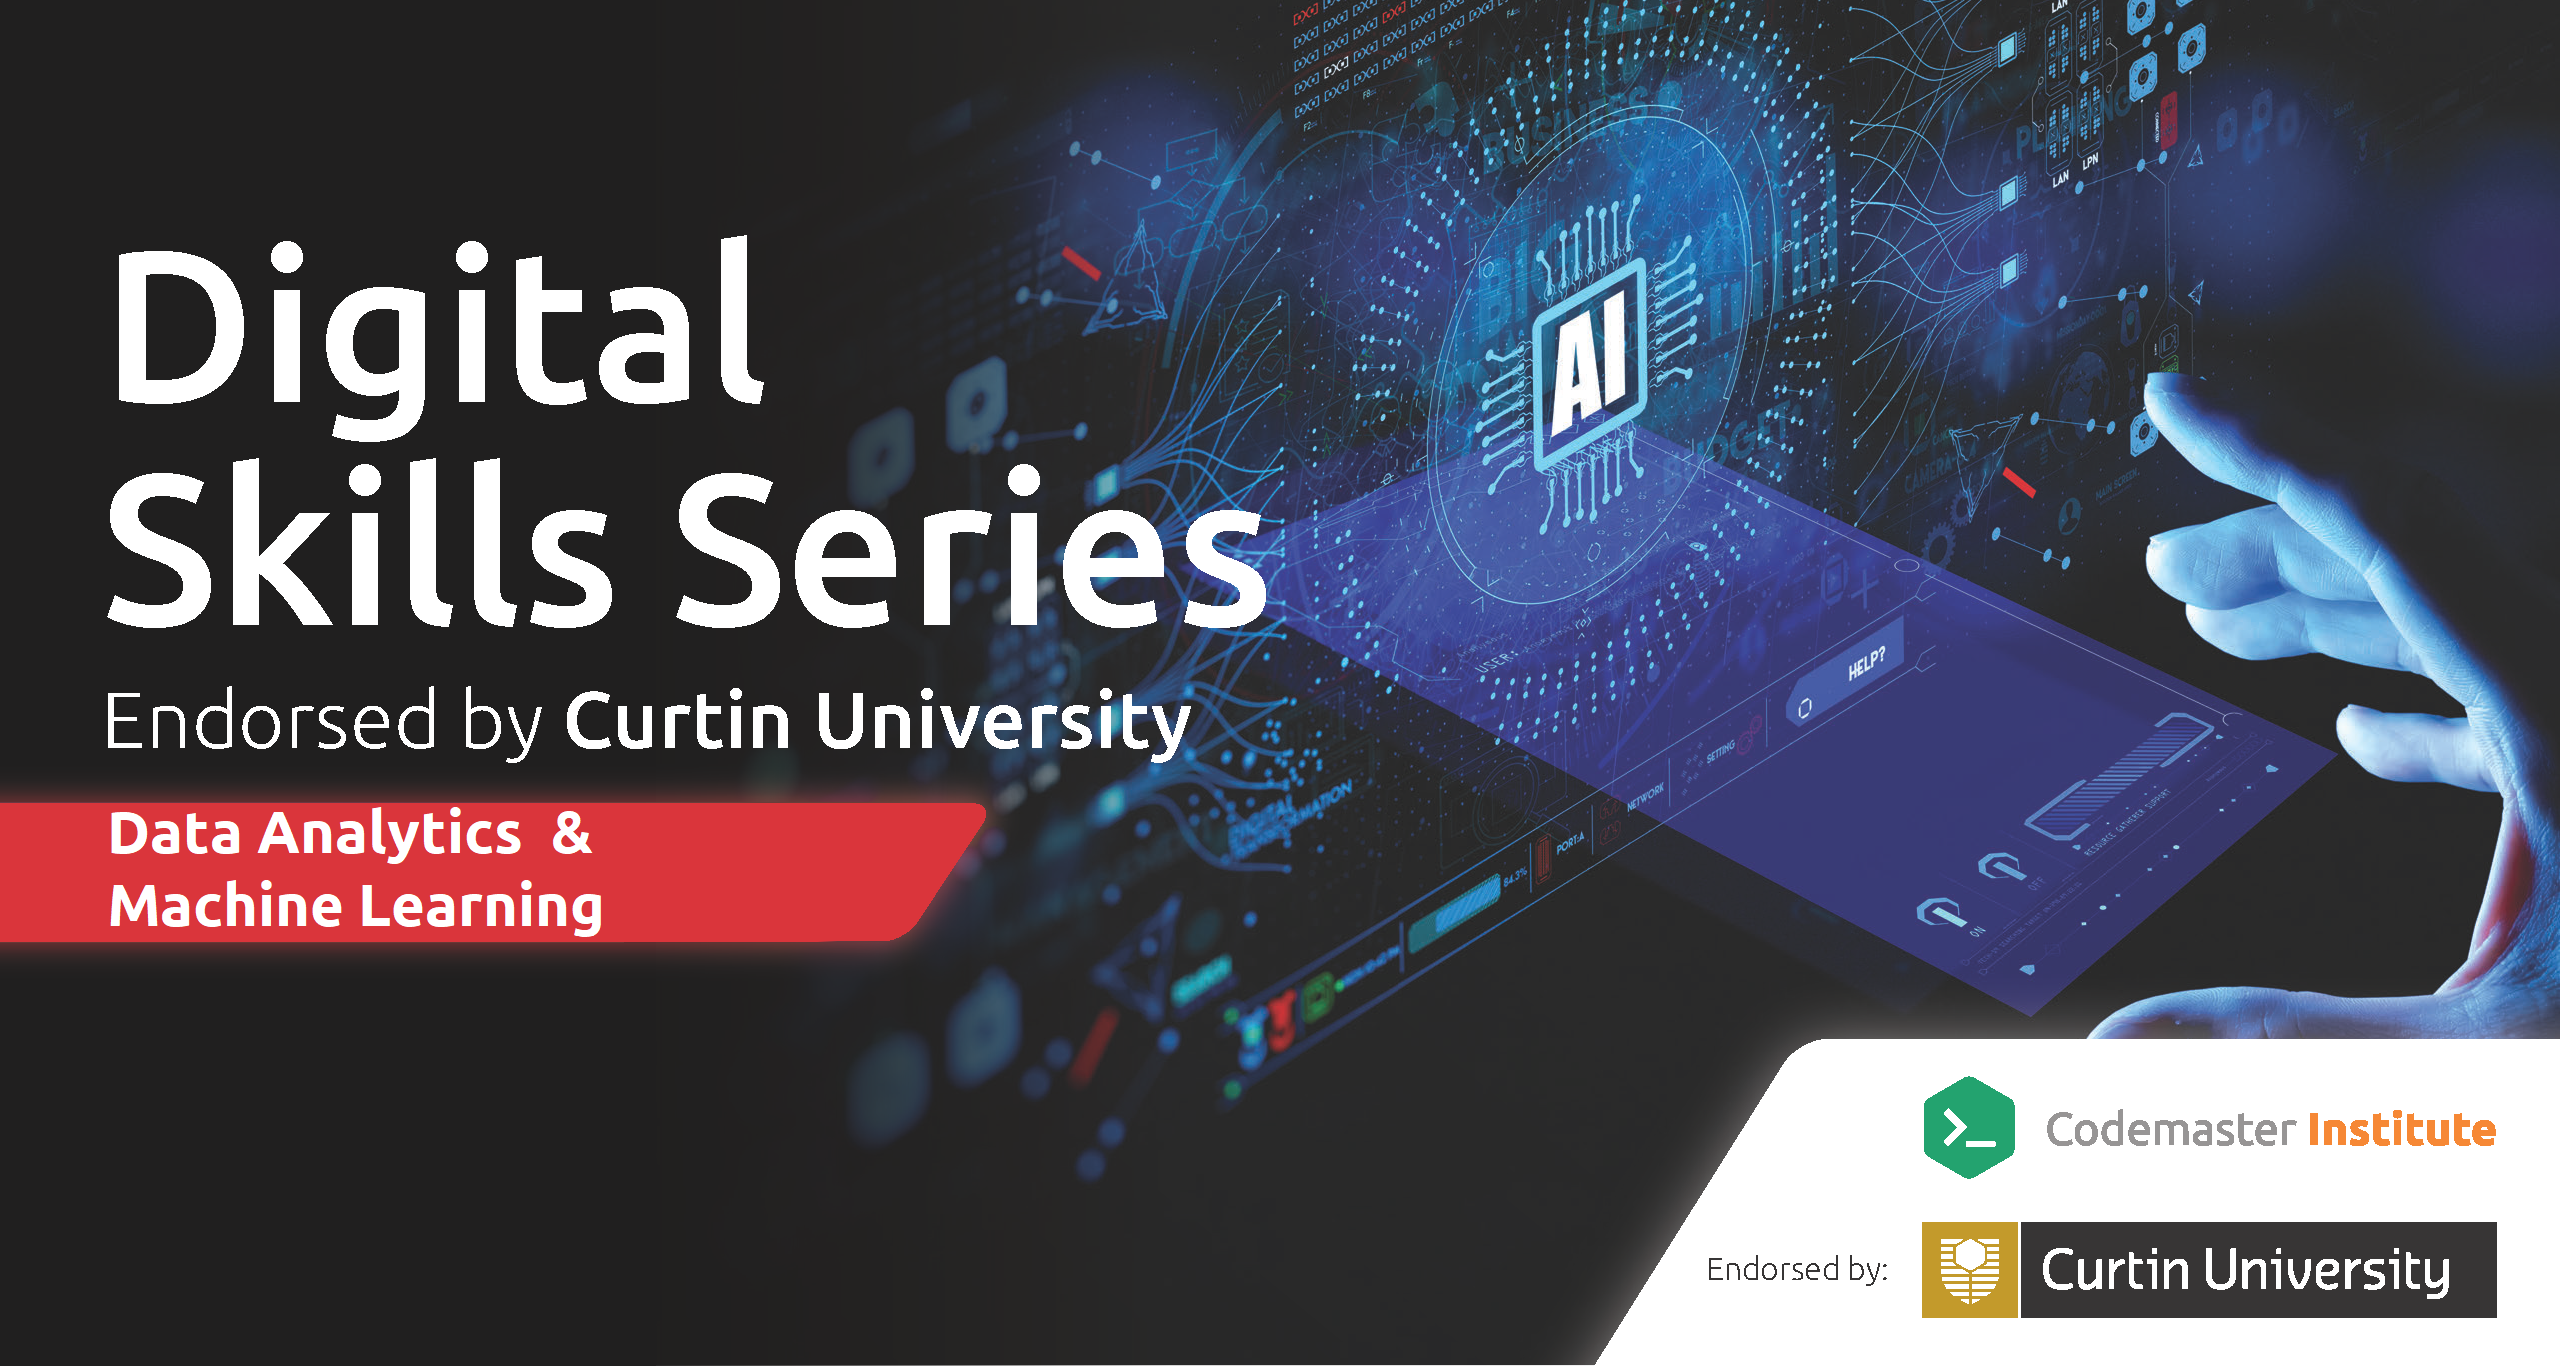 4 Week Data Analytics and Machine Learning - Digital Skills Series Endorsed by Curtin University